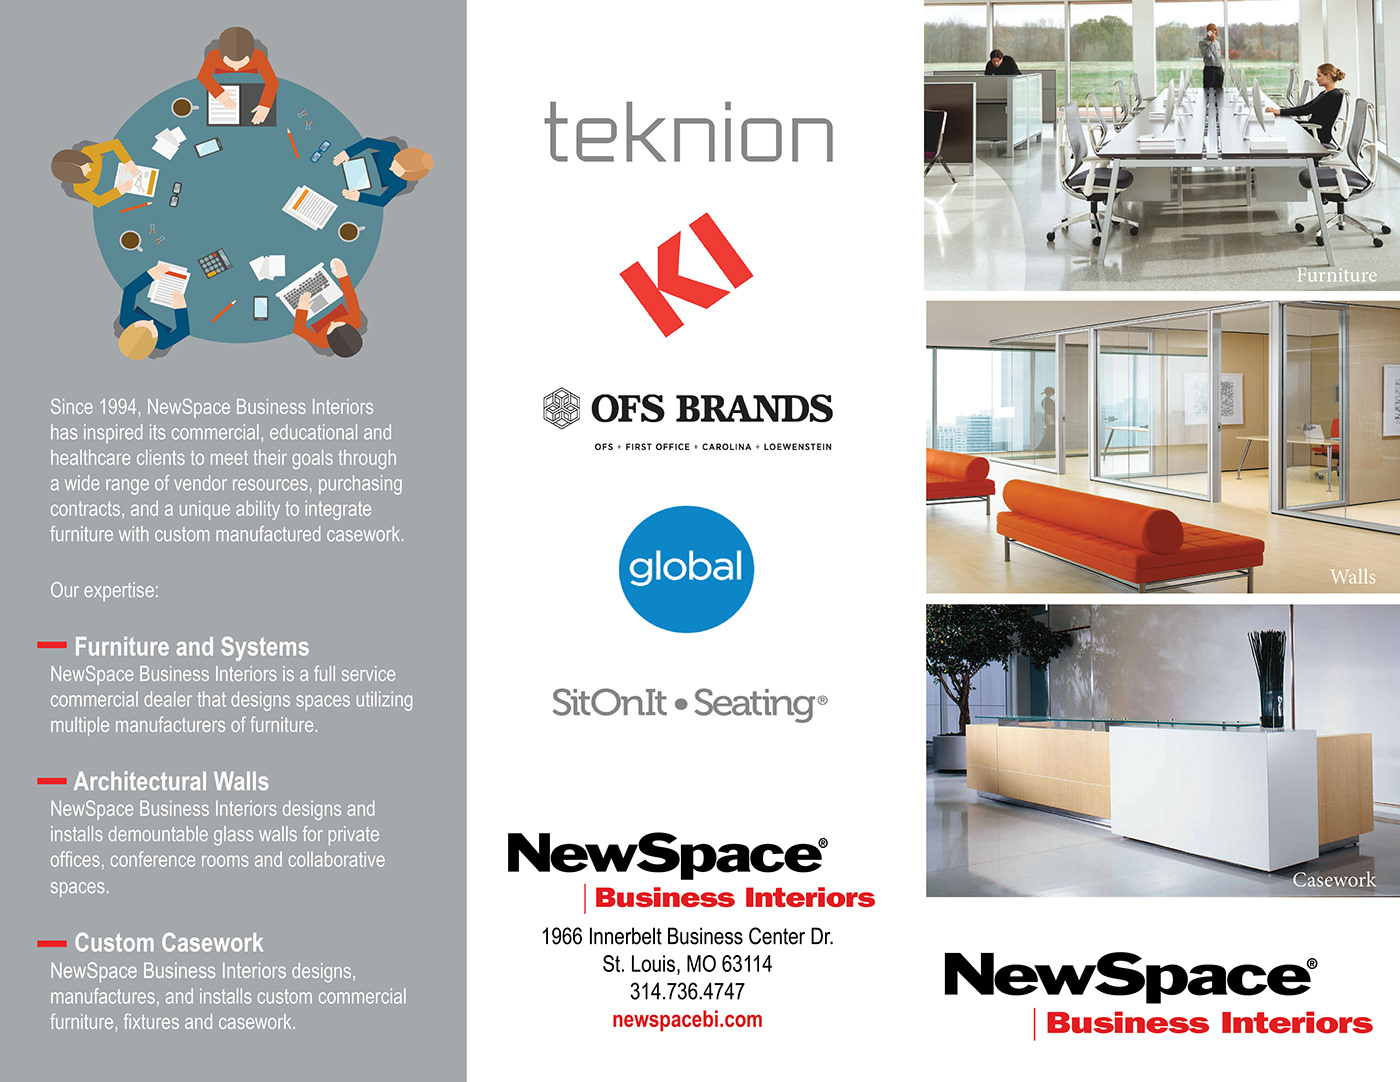 Tri-fold for NewSpace Business Interiors to showcase the work expertise of the company.